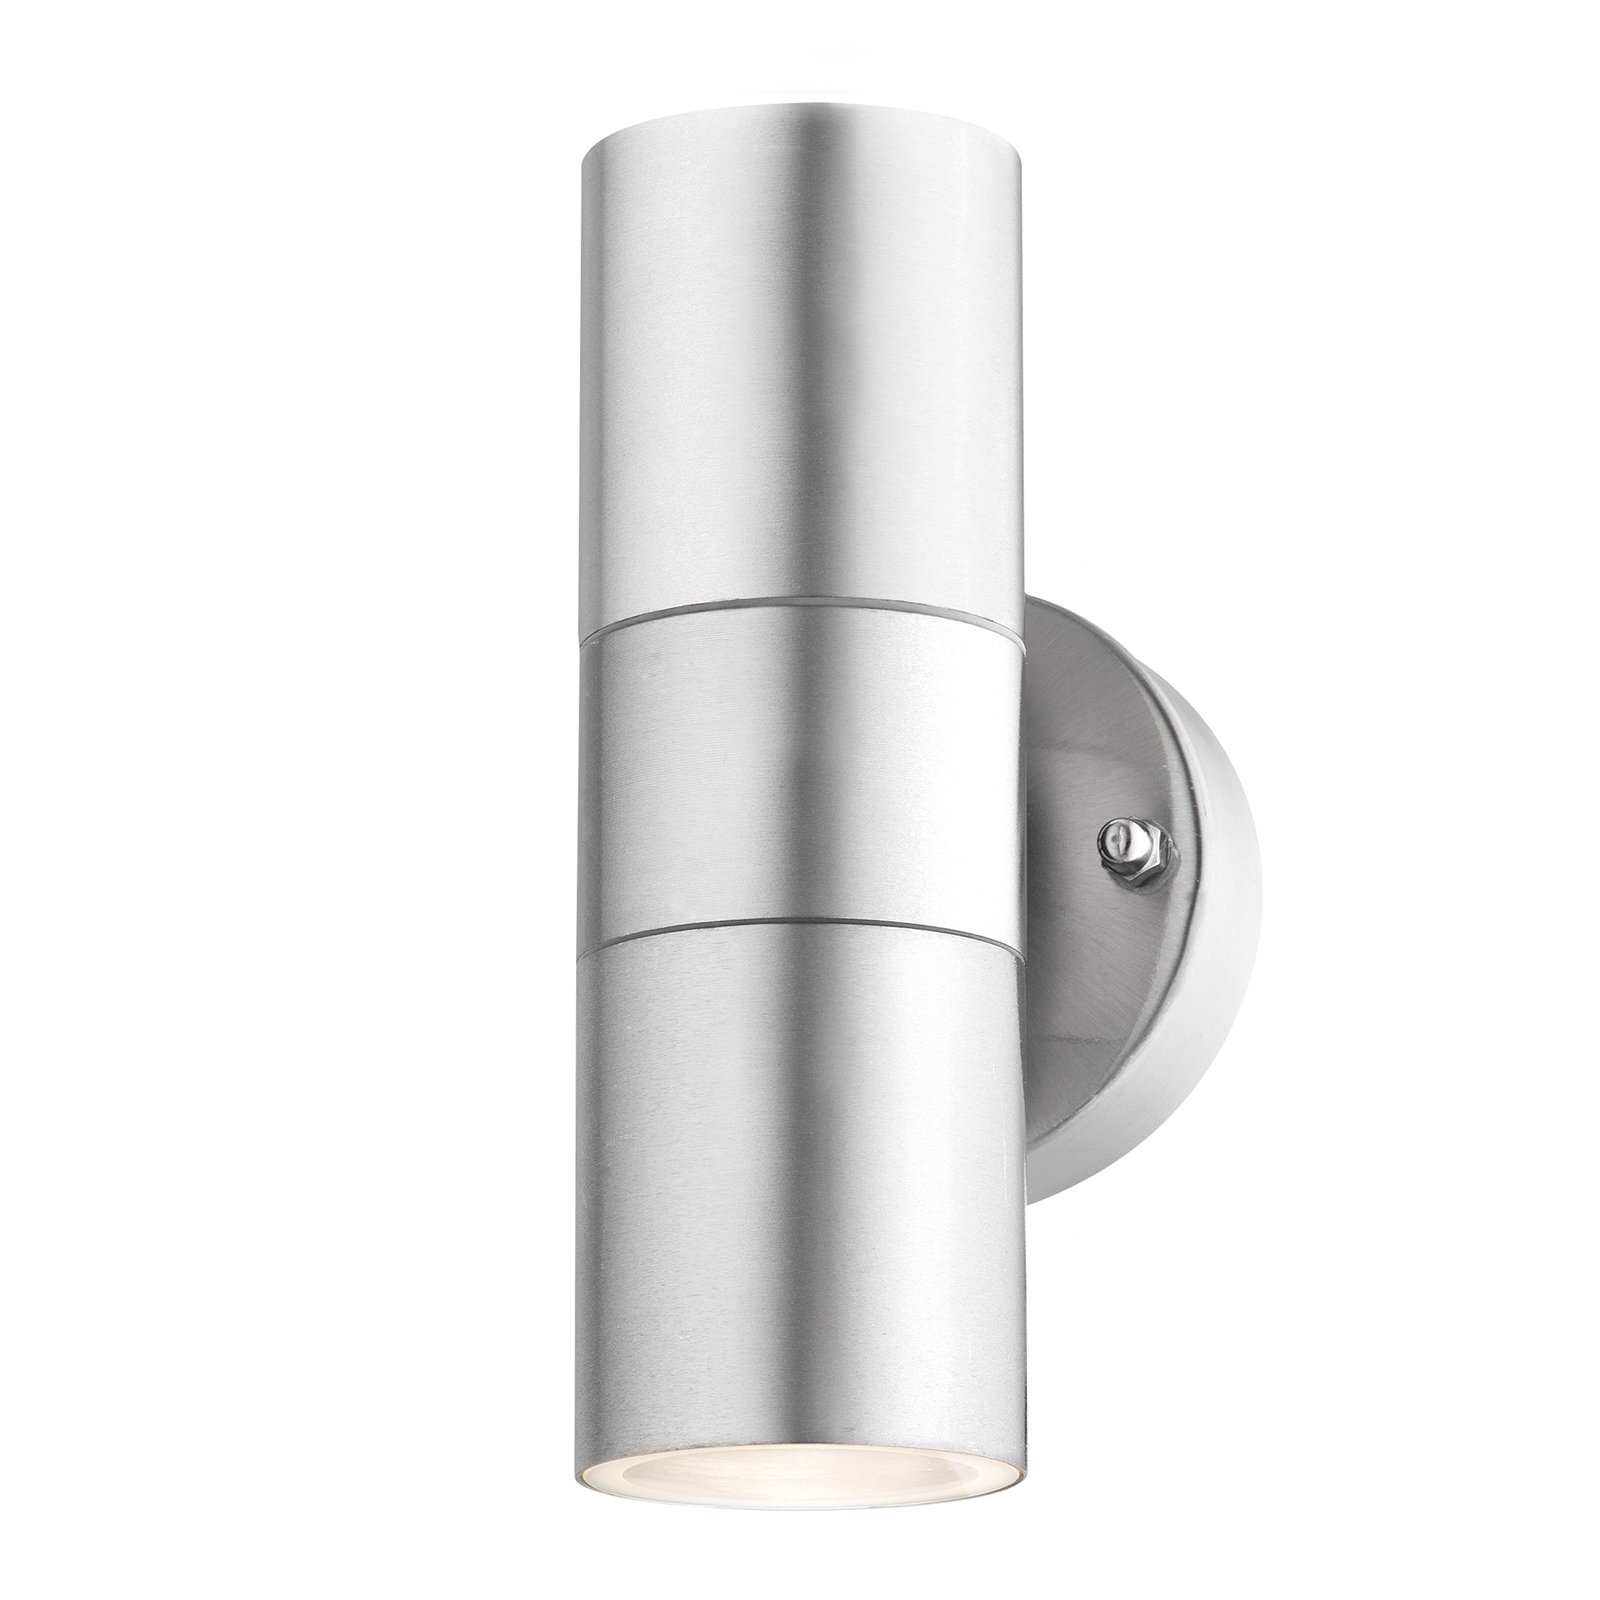 Arlec Grid Connect Smart Up And Down LED Wall Light